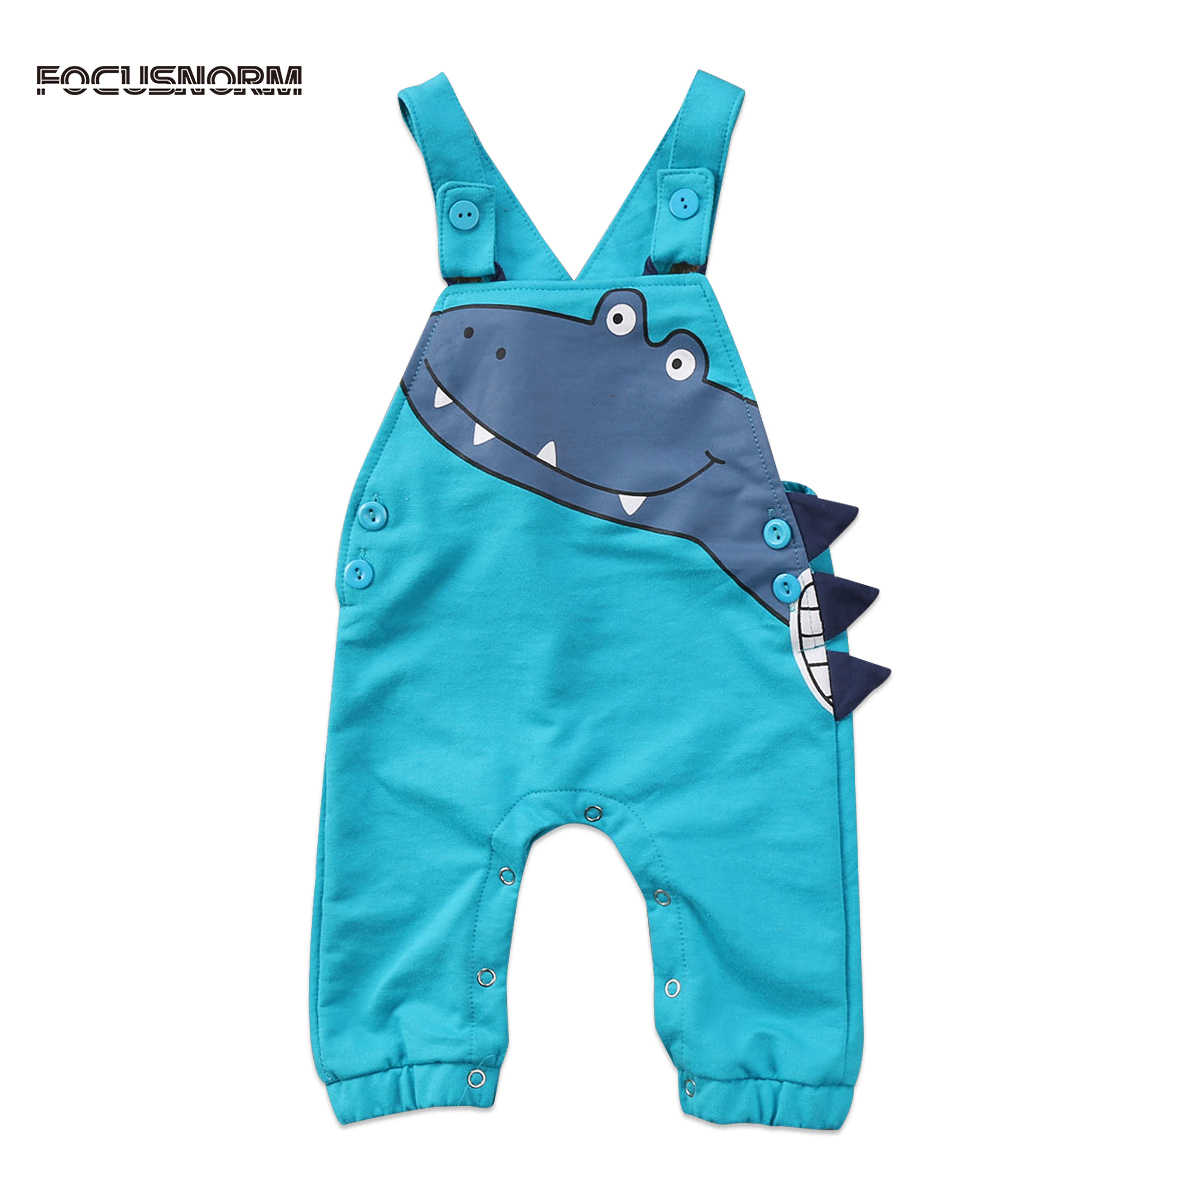 ab6c4a864263 Toddler Infant Baby Boys Girls Dinosaur Cartoon Suspenders Romper Overalls  Cotton Jumpsuit Outfits Clothes